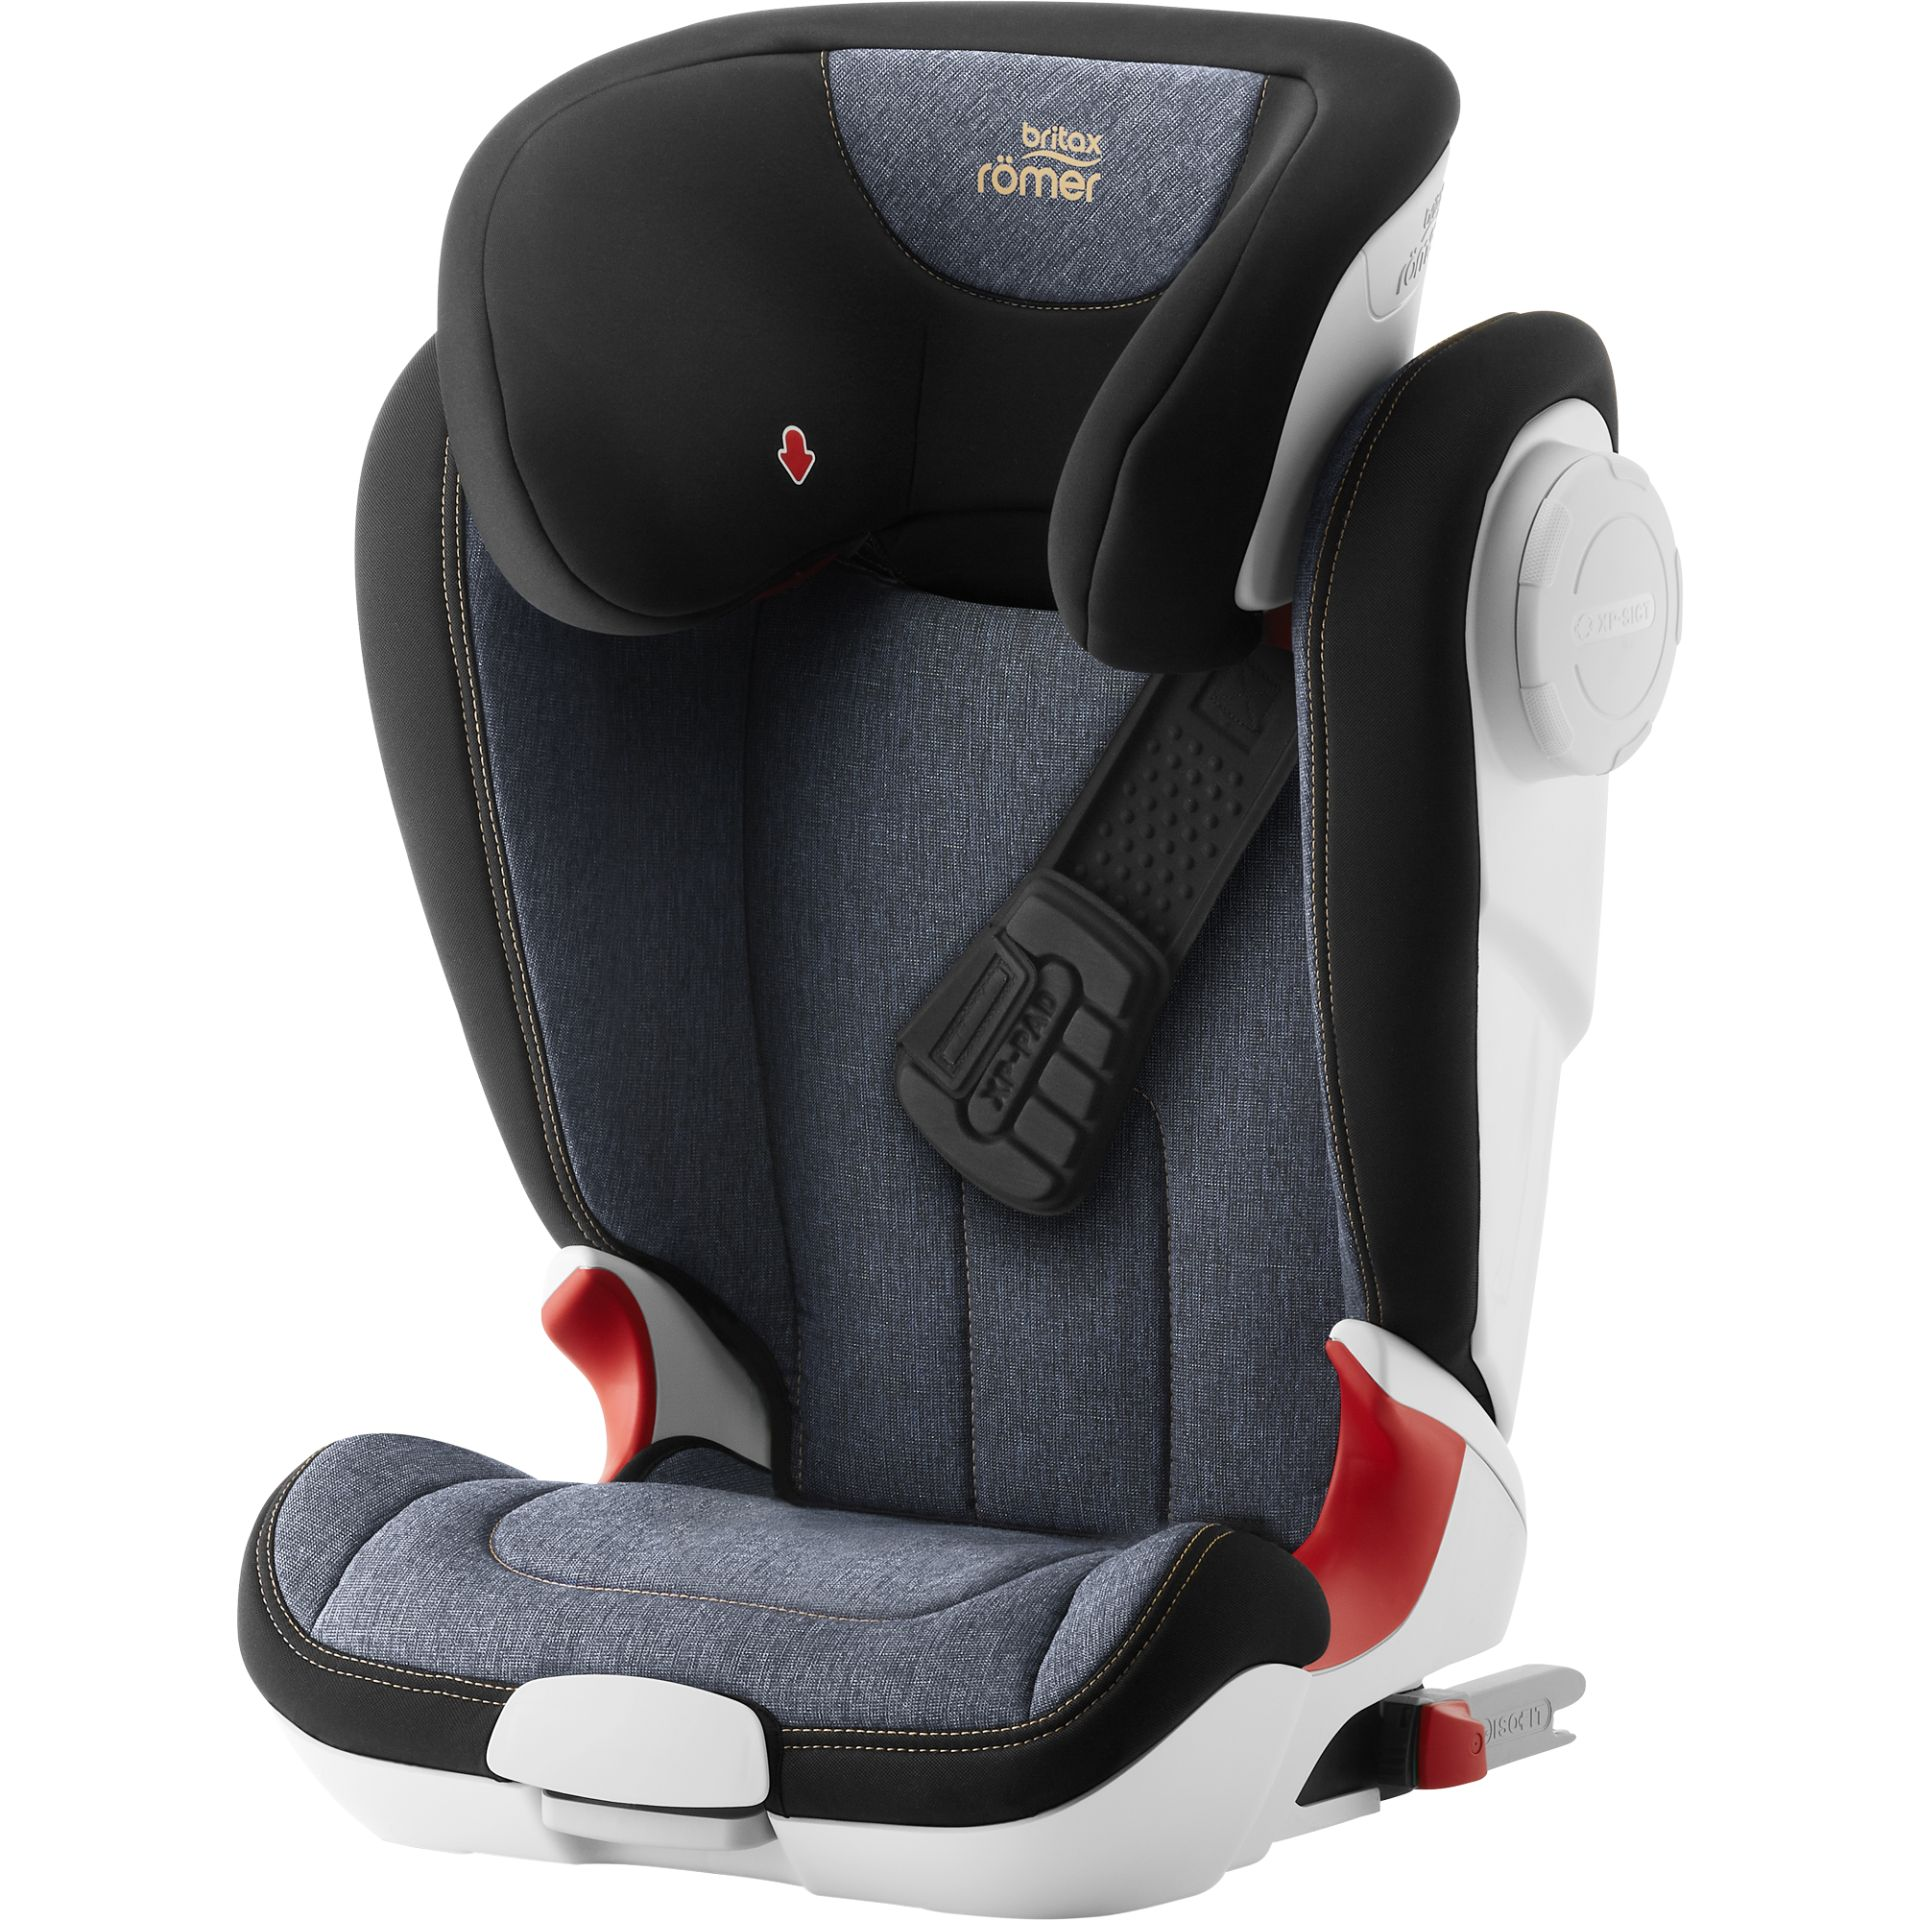 britax r mer kindersitz kidfix xp sict online kaufen bei. Black Bedroom Furniture Sets. Home Design Ideas